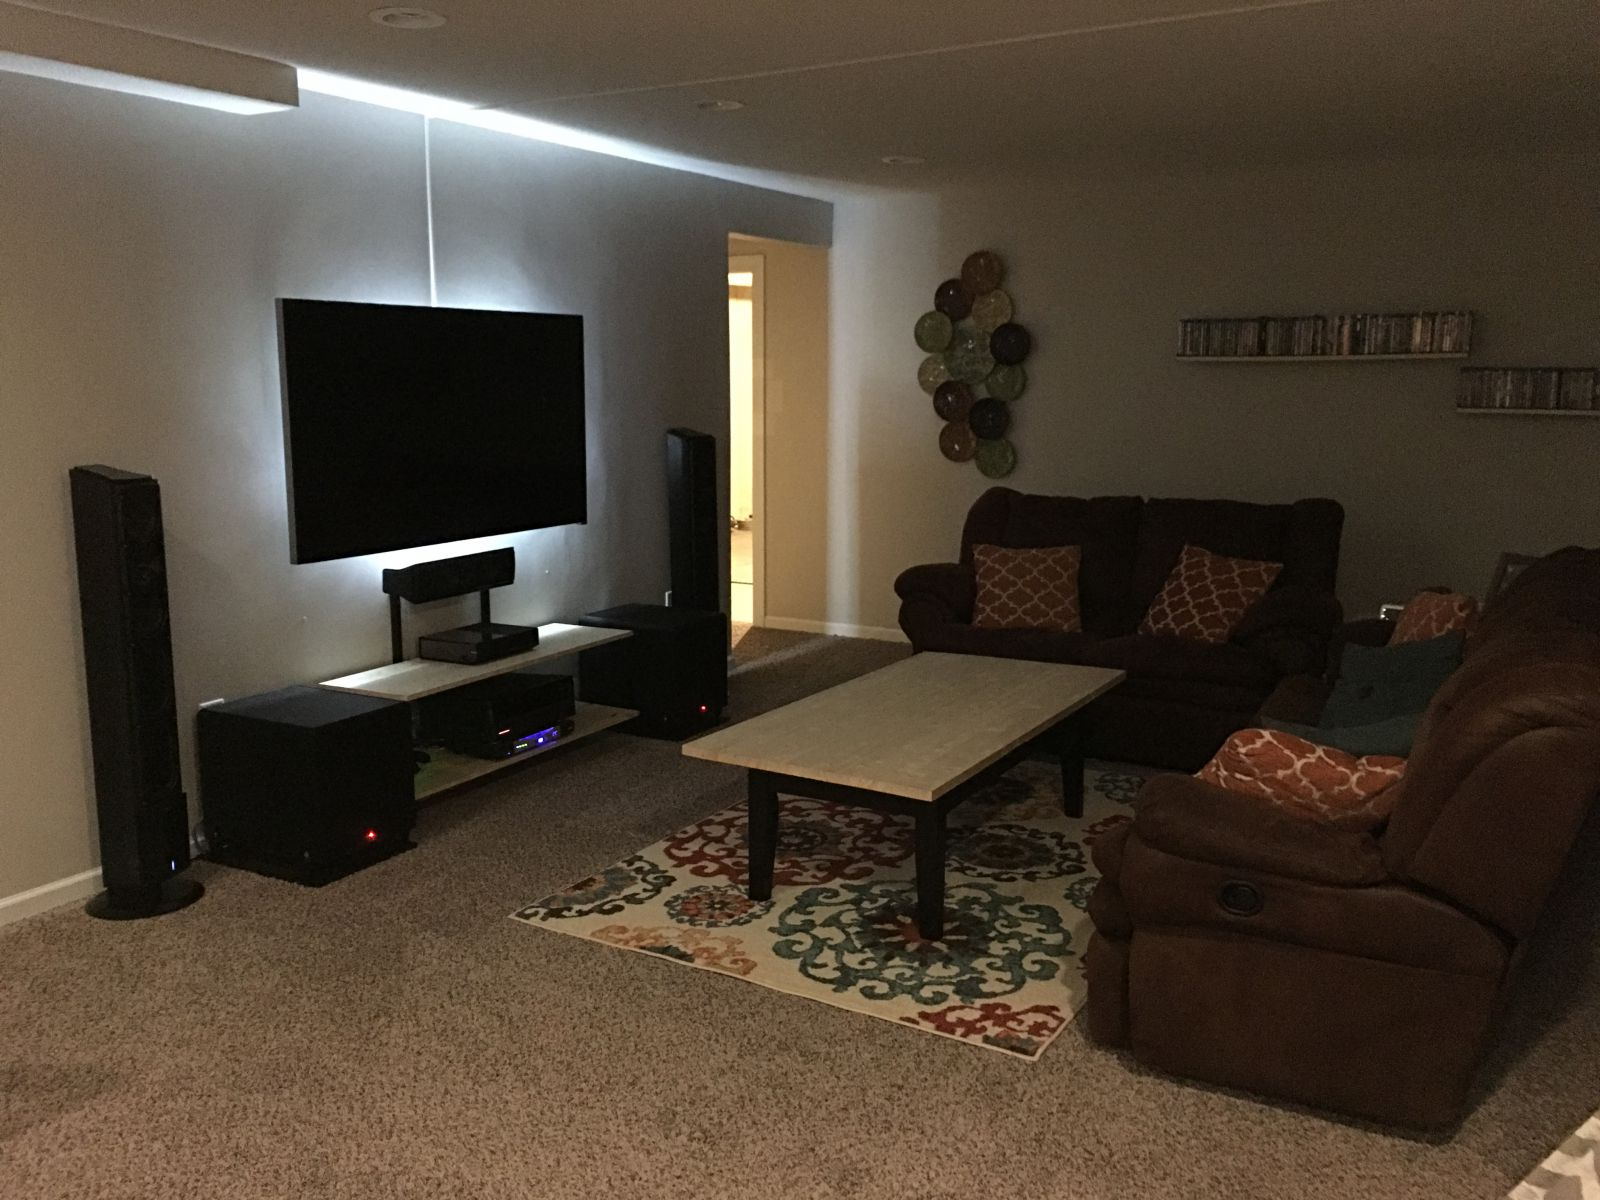 Ambient Lighting Members Albums Category The Klipsch